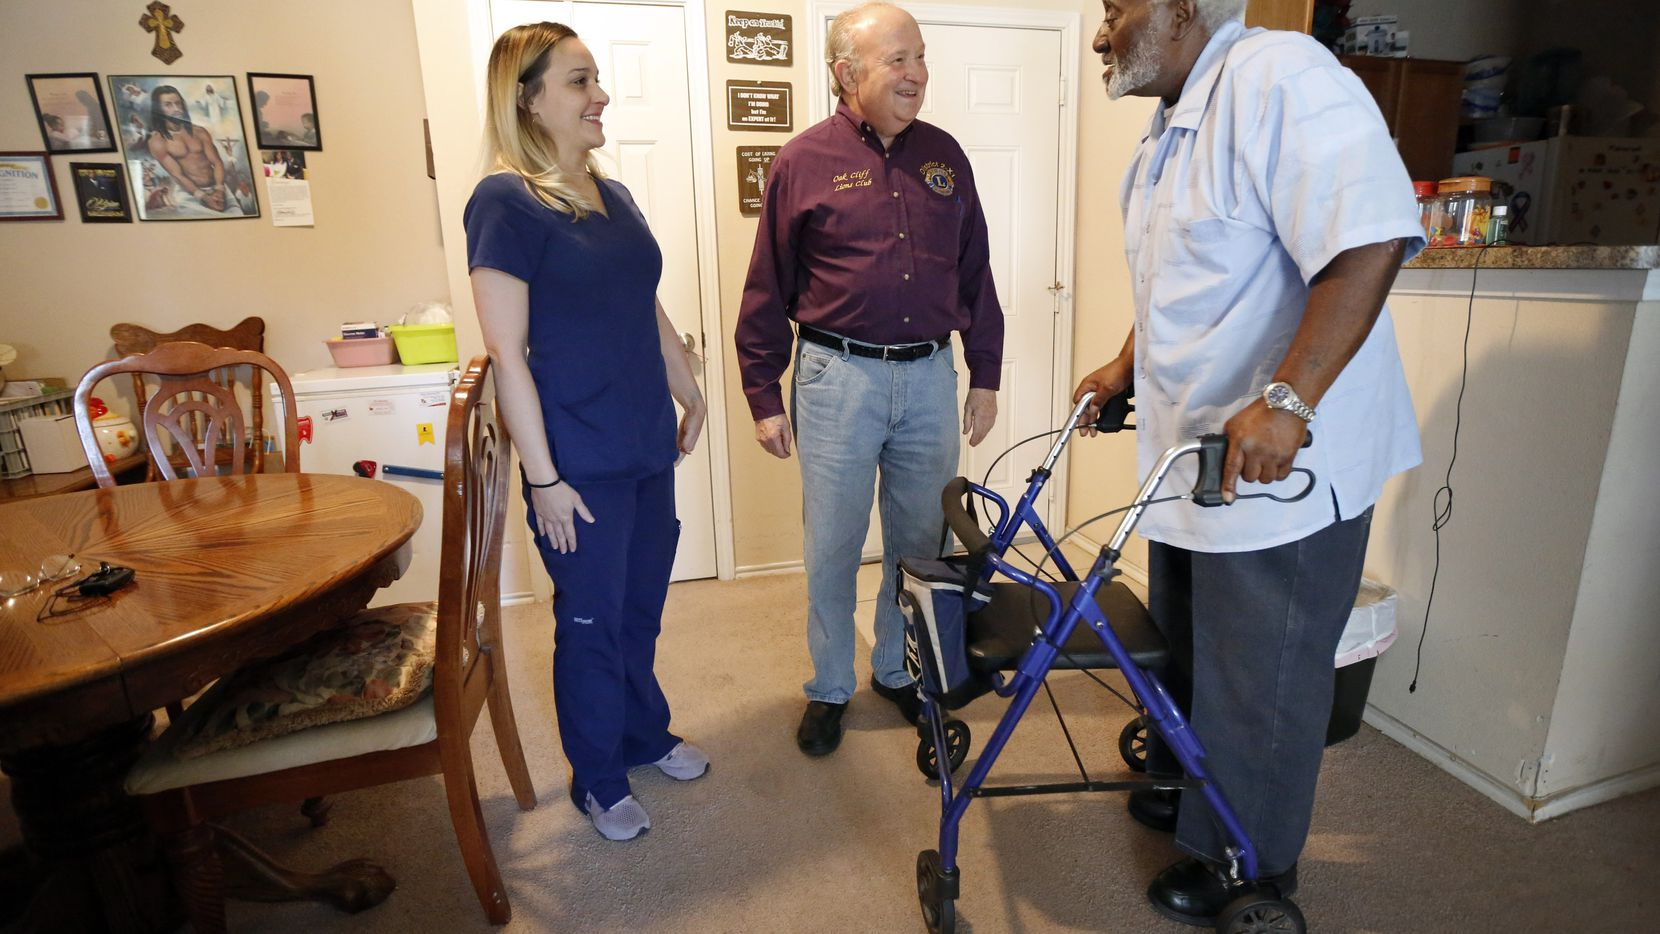 Meals on Wheels recipient George Kelley visited with Abby Tupper and her father Charlie Tupper, an Oak Cliff Lions Club member, as the three recounted how the Tuppers came to Kelley's aid.